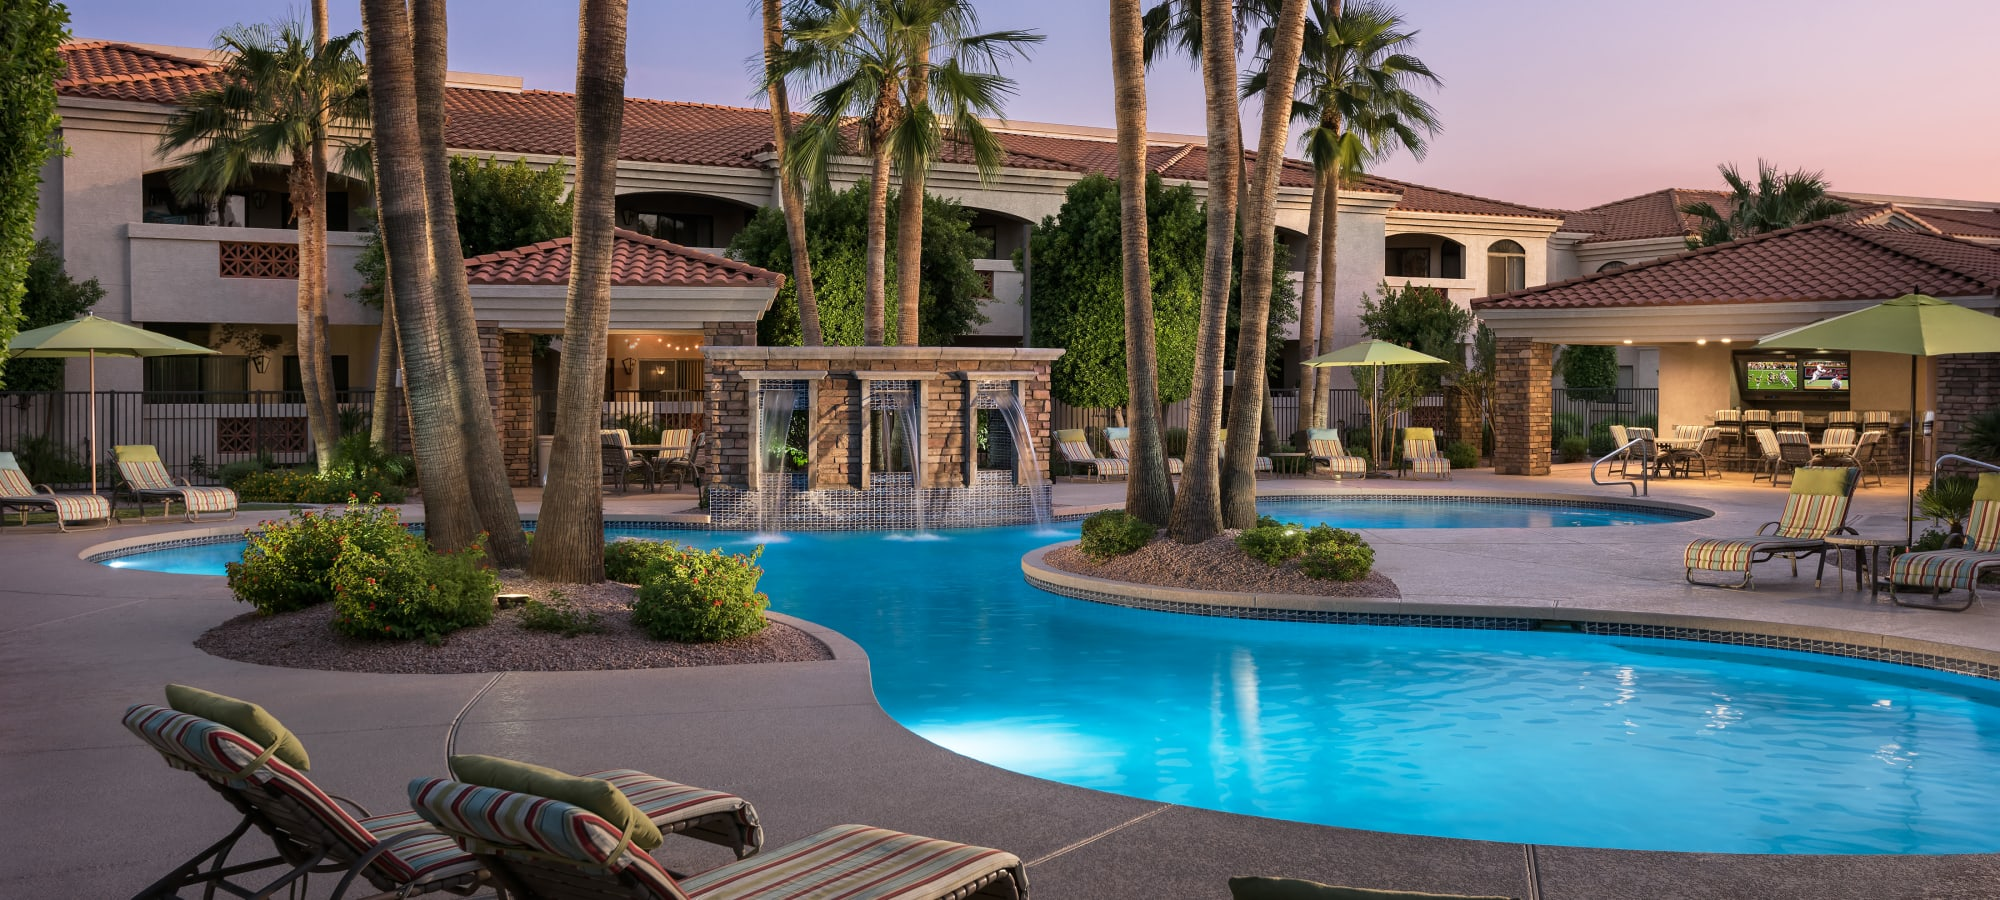 Luxury swimming pool at San Prado in Glendale, Arizona